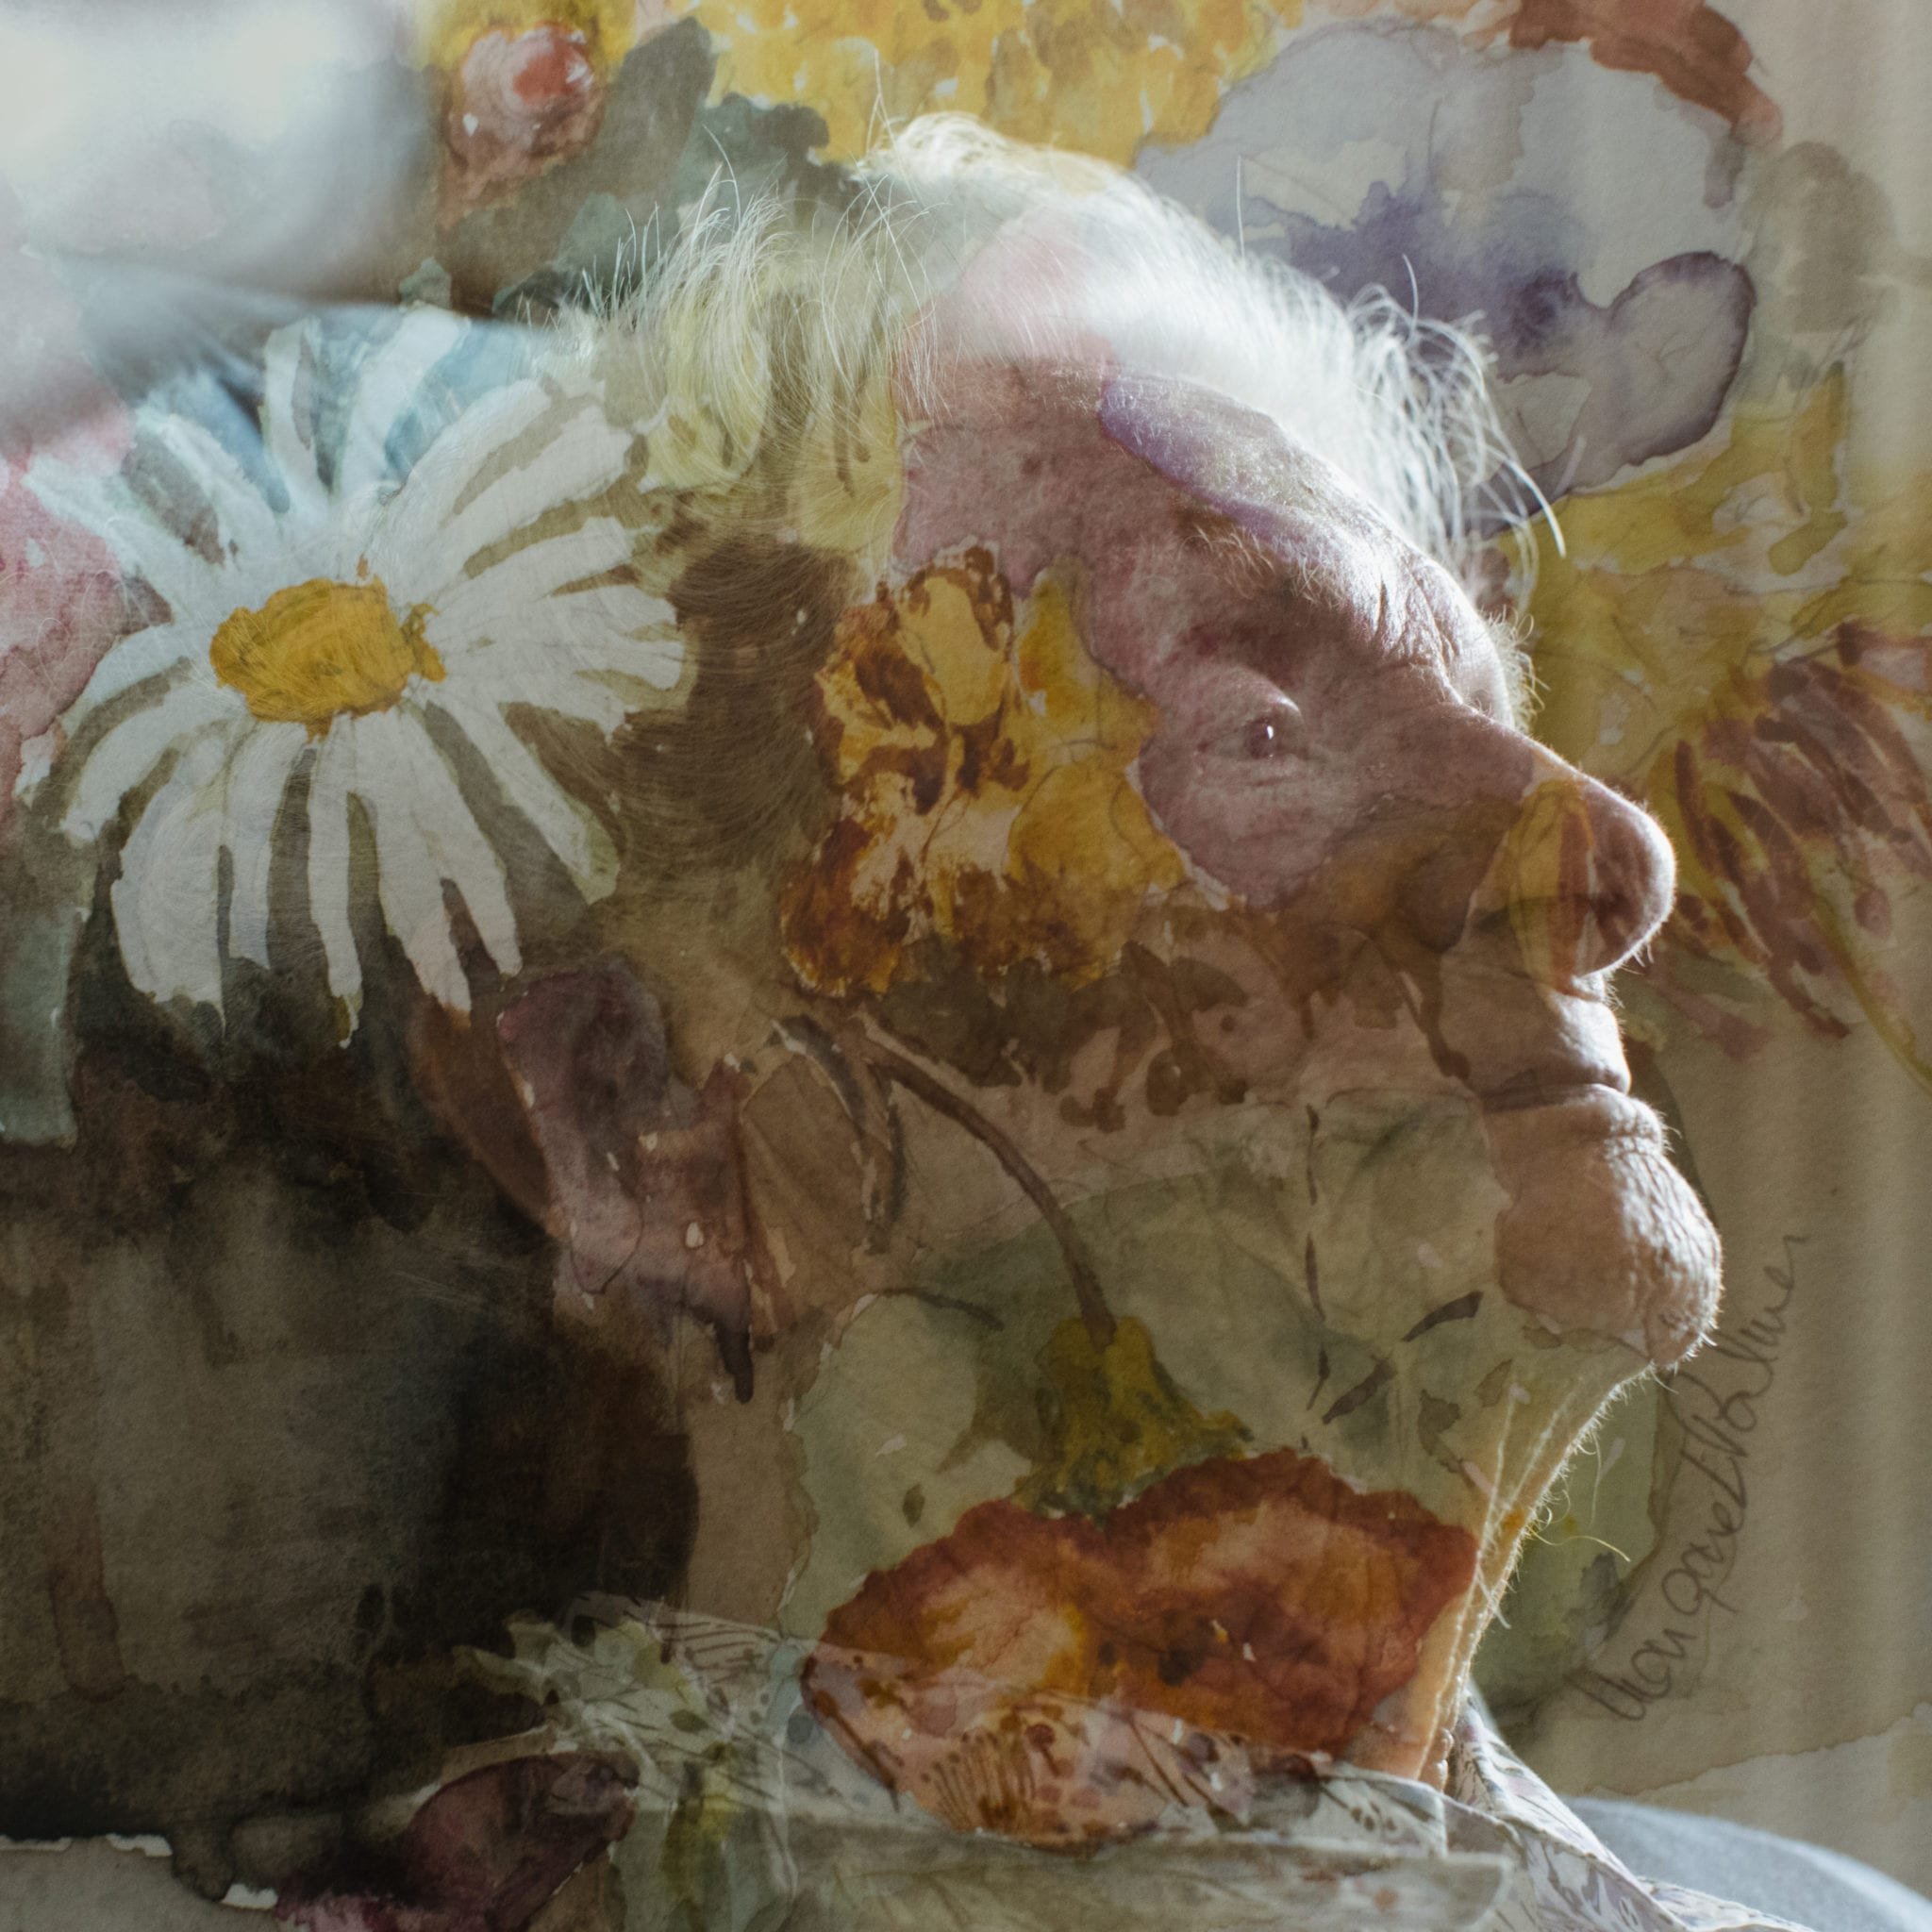 Lauren Murphy, Margaret Palmer, From England to Trafalgar, 2019, double exposure digital image, DIMENSIONS, Courtesy of the artist.